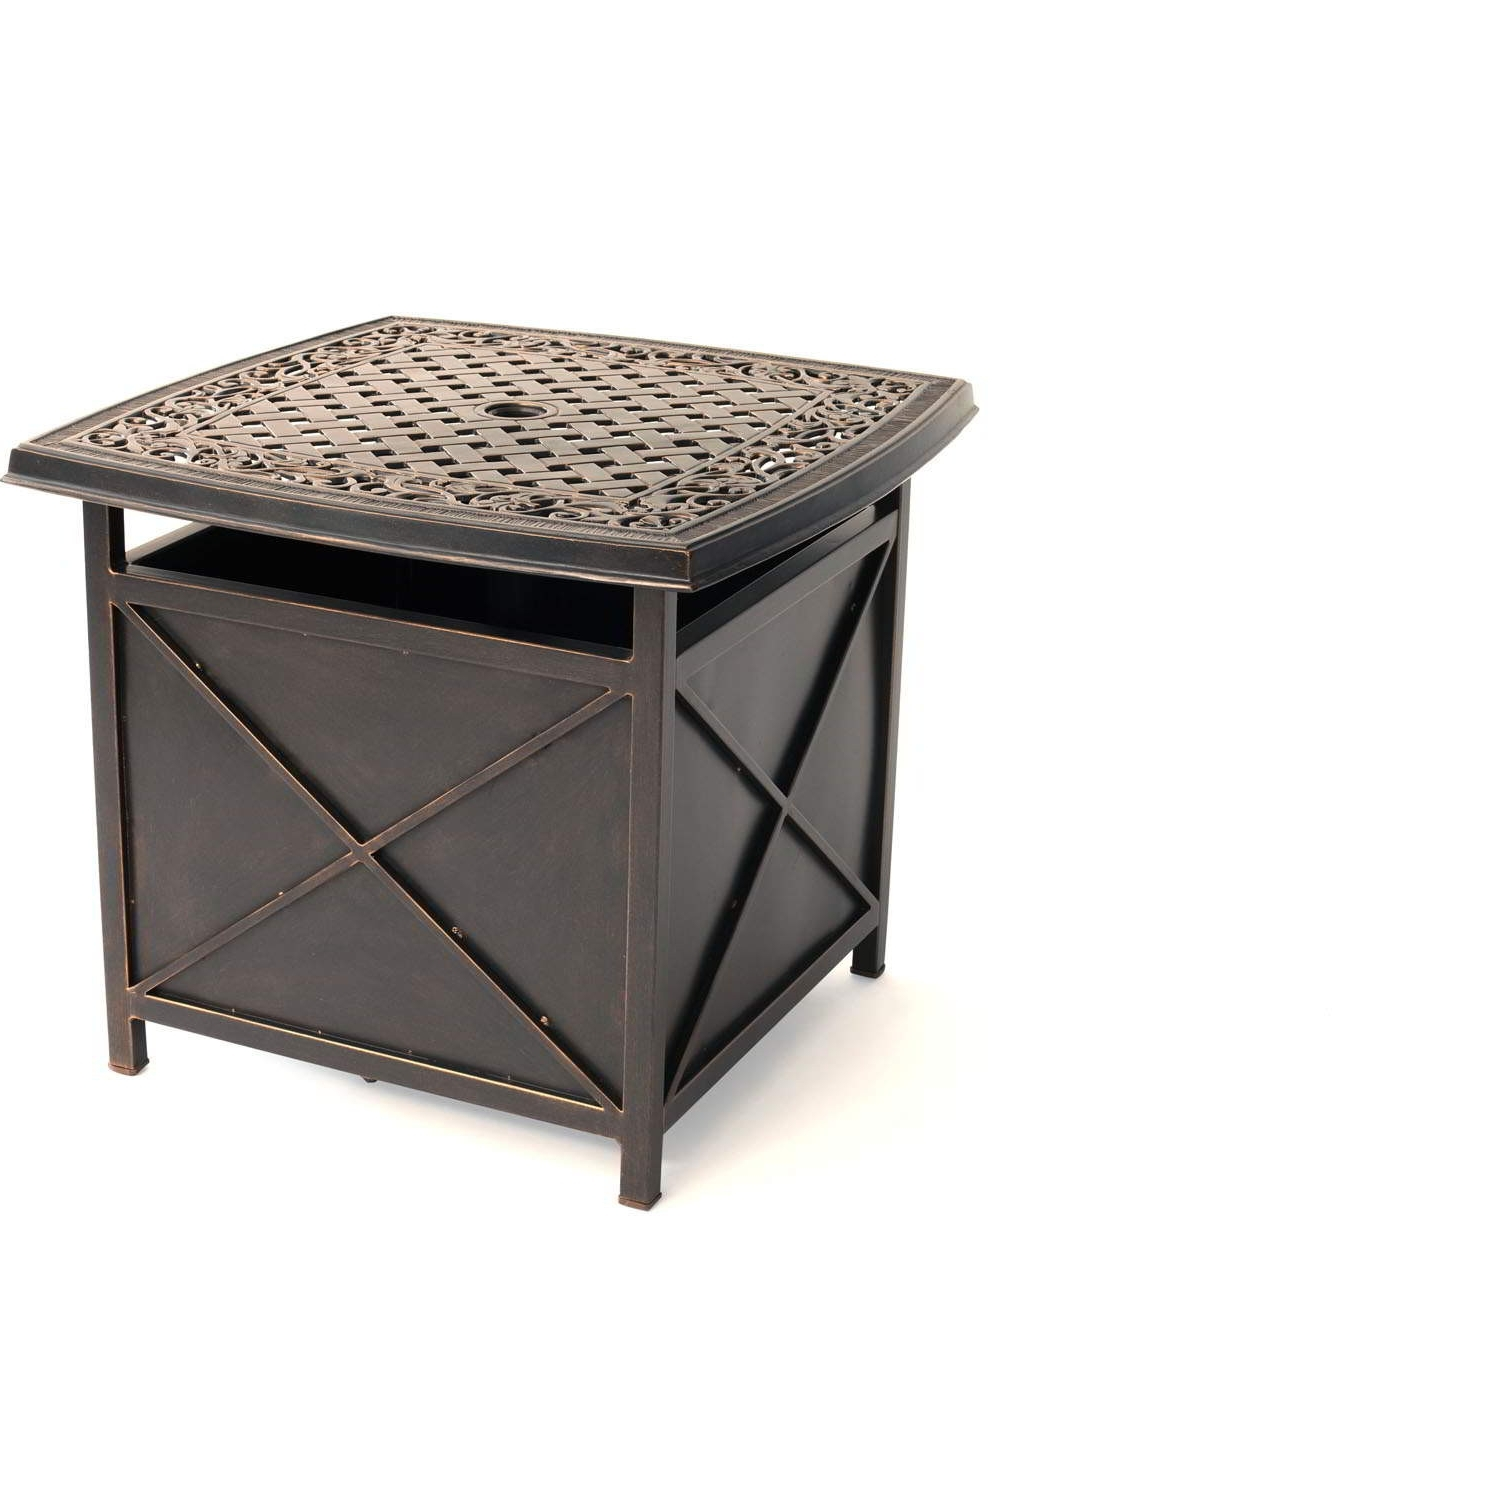 Most Popular 50 Outdoor Umbrella Side Table Pa9z – Mcnamaralaw With Patio Umbrella Side Tables (View 20 of 20)